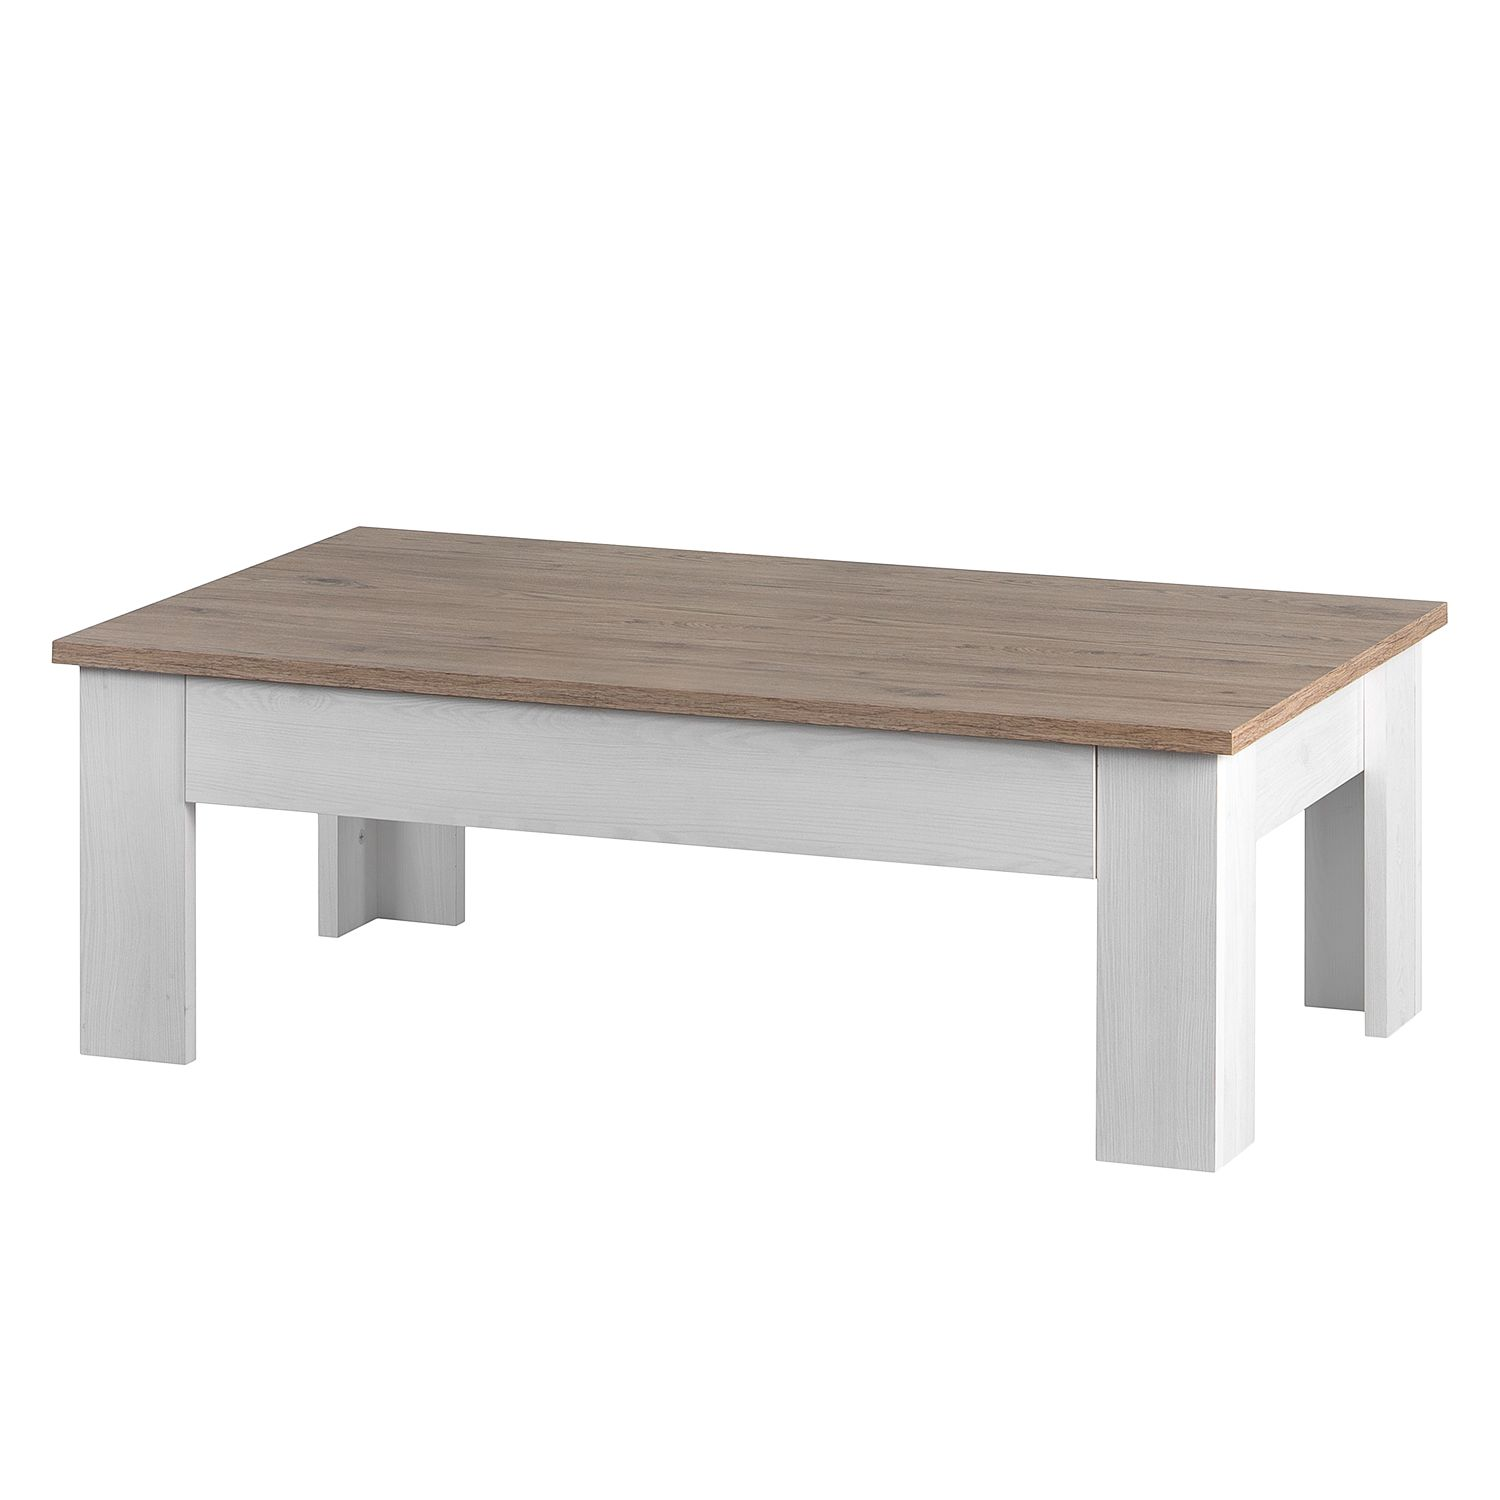 Table basse Telados